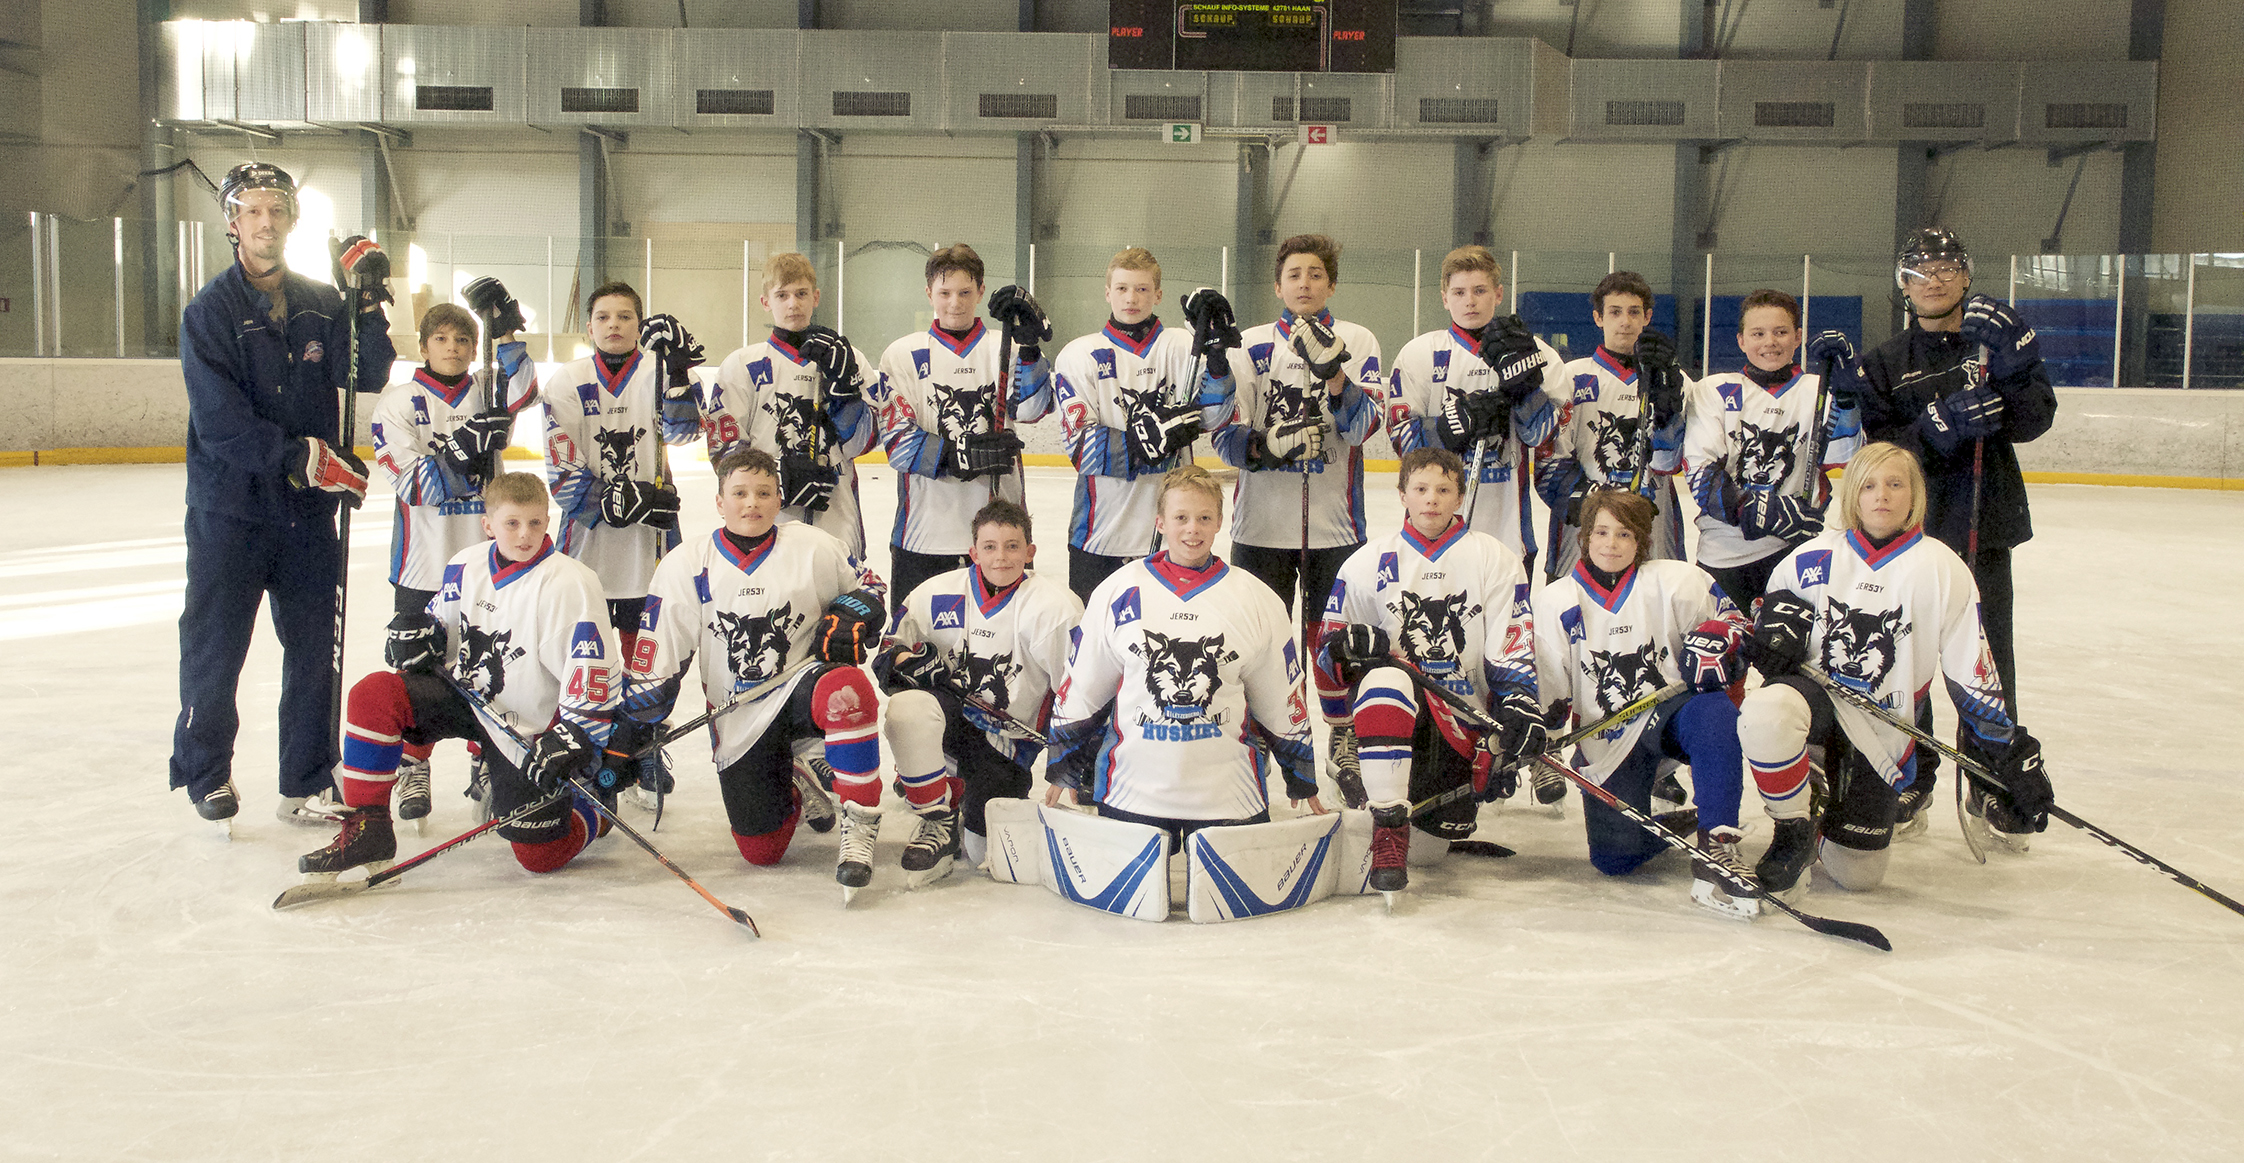 U13 & U11 ARE WAITING FOR YOU THIS WEEK END AT AXA HUSKIES ICE CUP 2018 AT KOCKELSCHEUER